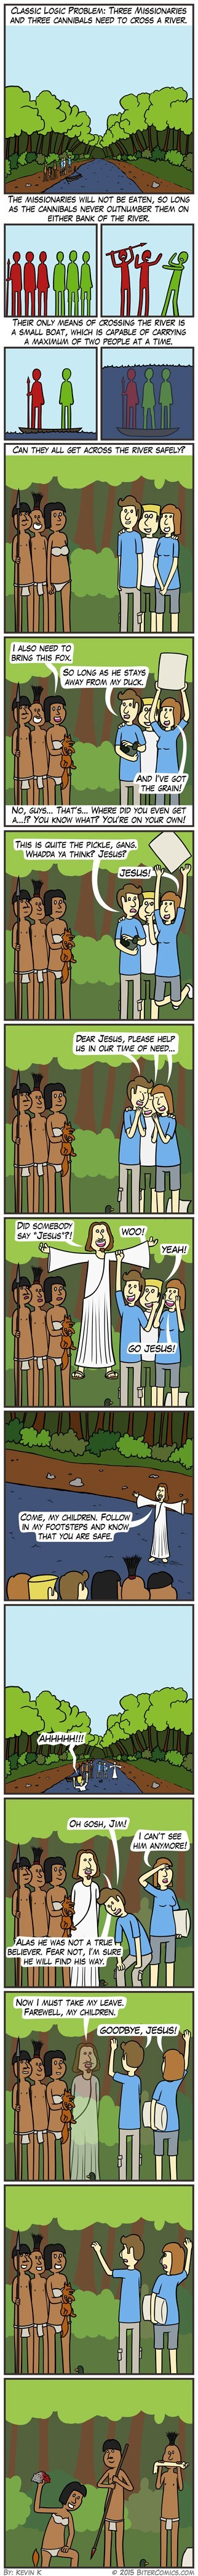 jesus,sad but true,logic,cannibals,web comics